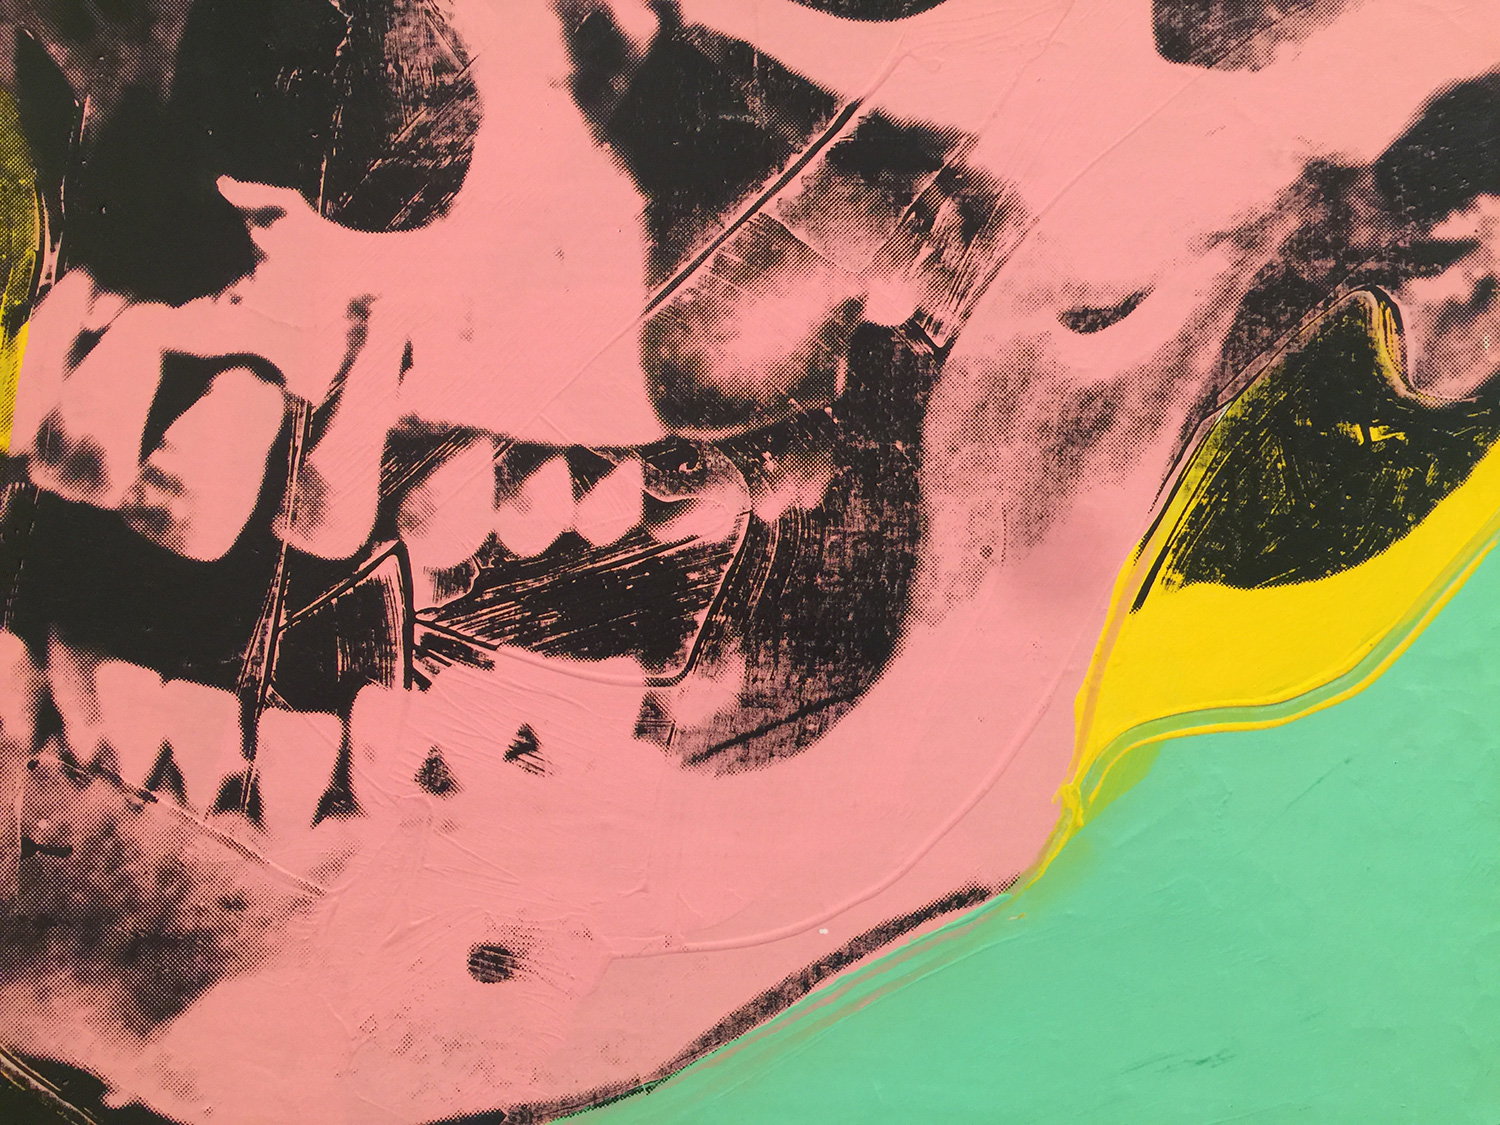 Detail from   Skull  , 1976, Andy Warhol.